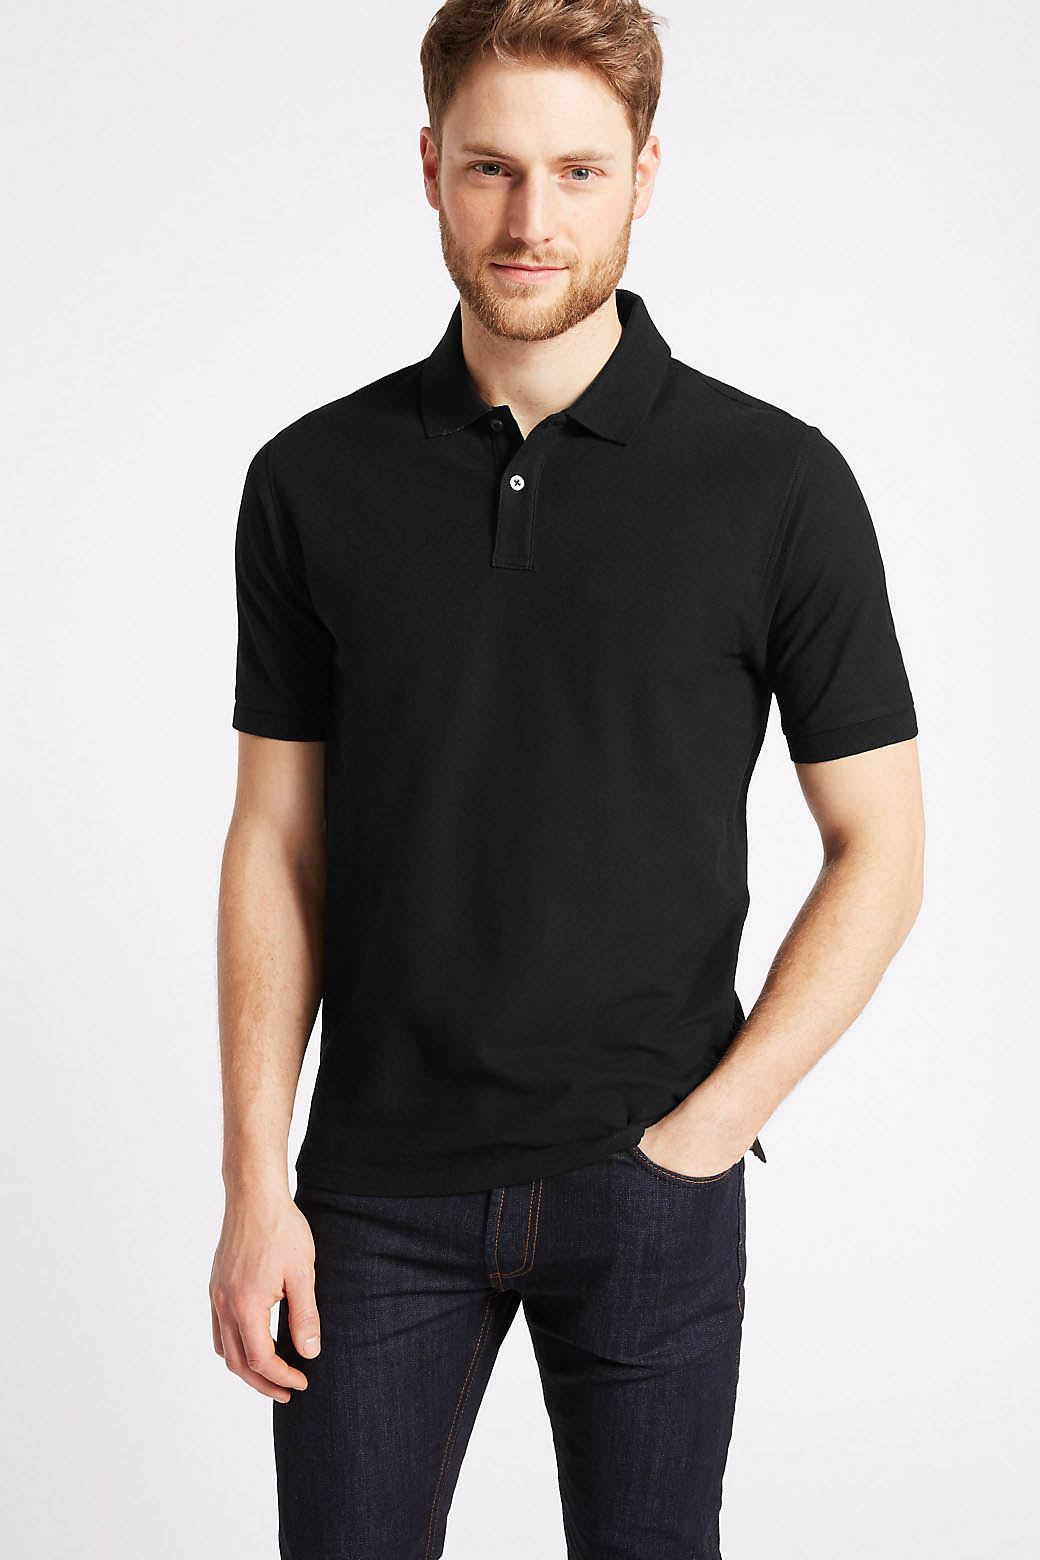 Marks-amp-Spencer-Mens-Cotton-Pique-Polo-Shirt-Extra-Large-Sizes thumbnail 7